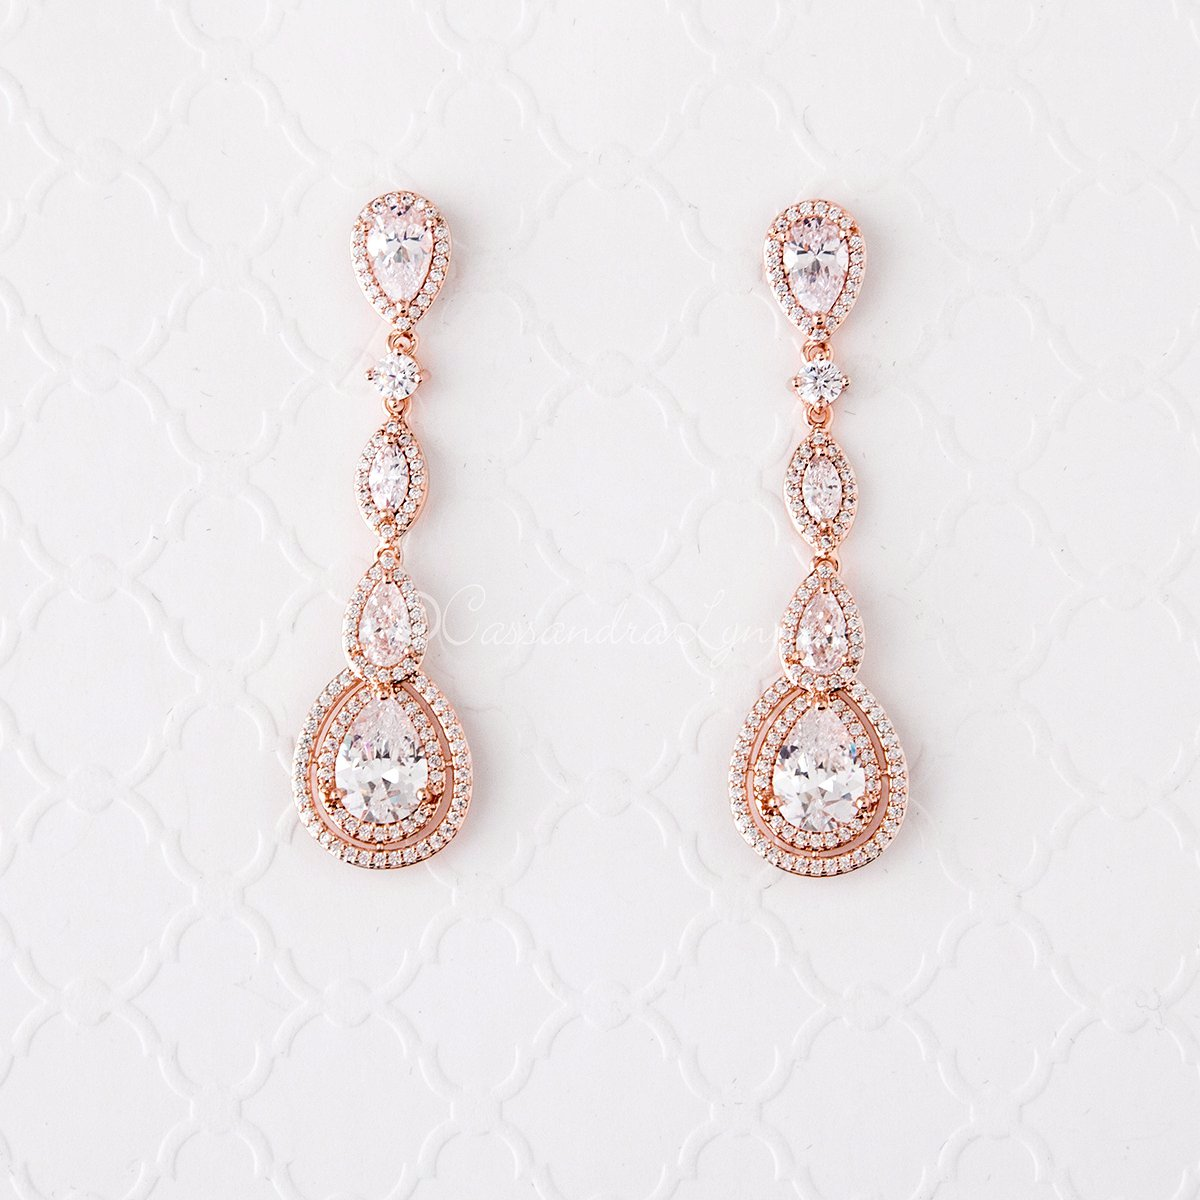 Cubic Zirconia Earrings Pave Teardrop and Marquise Stones Rose Gold